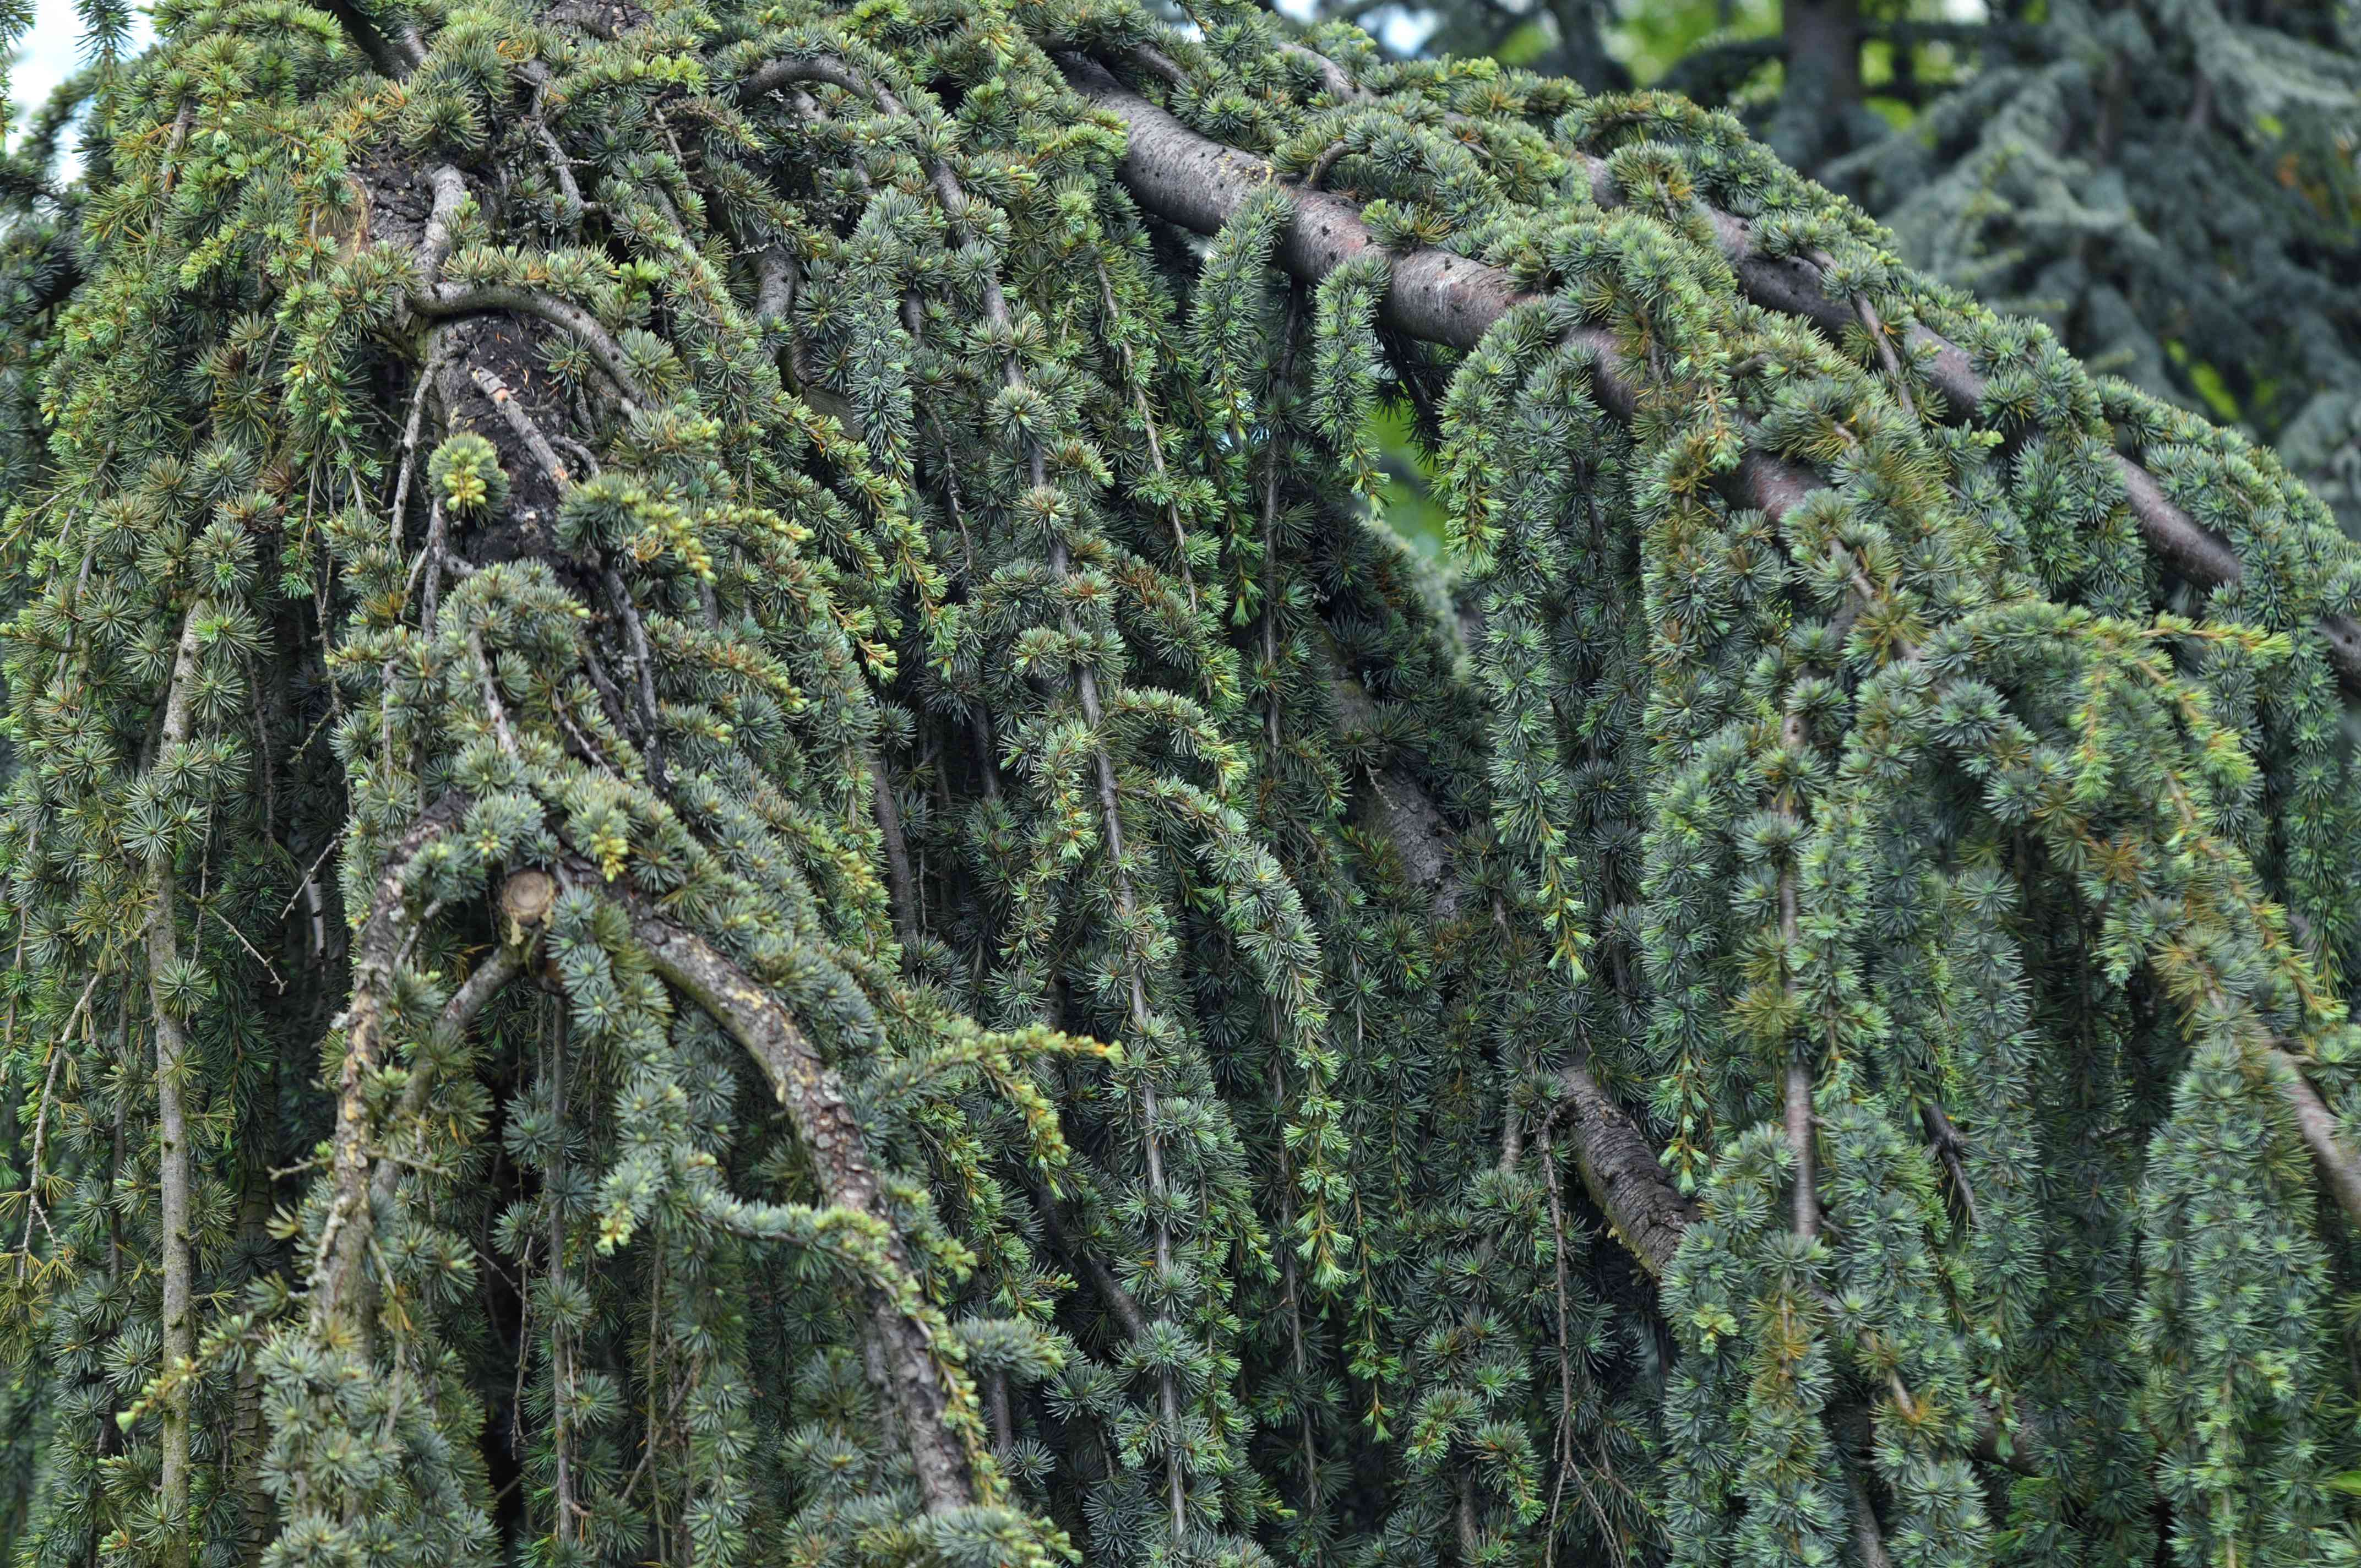 Blue atlas cedar with drooping and twisted branches with evergreen needles